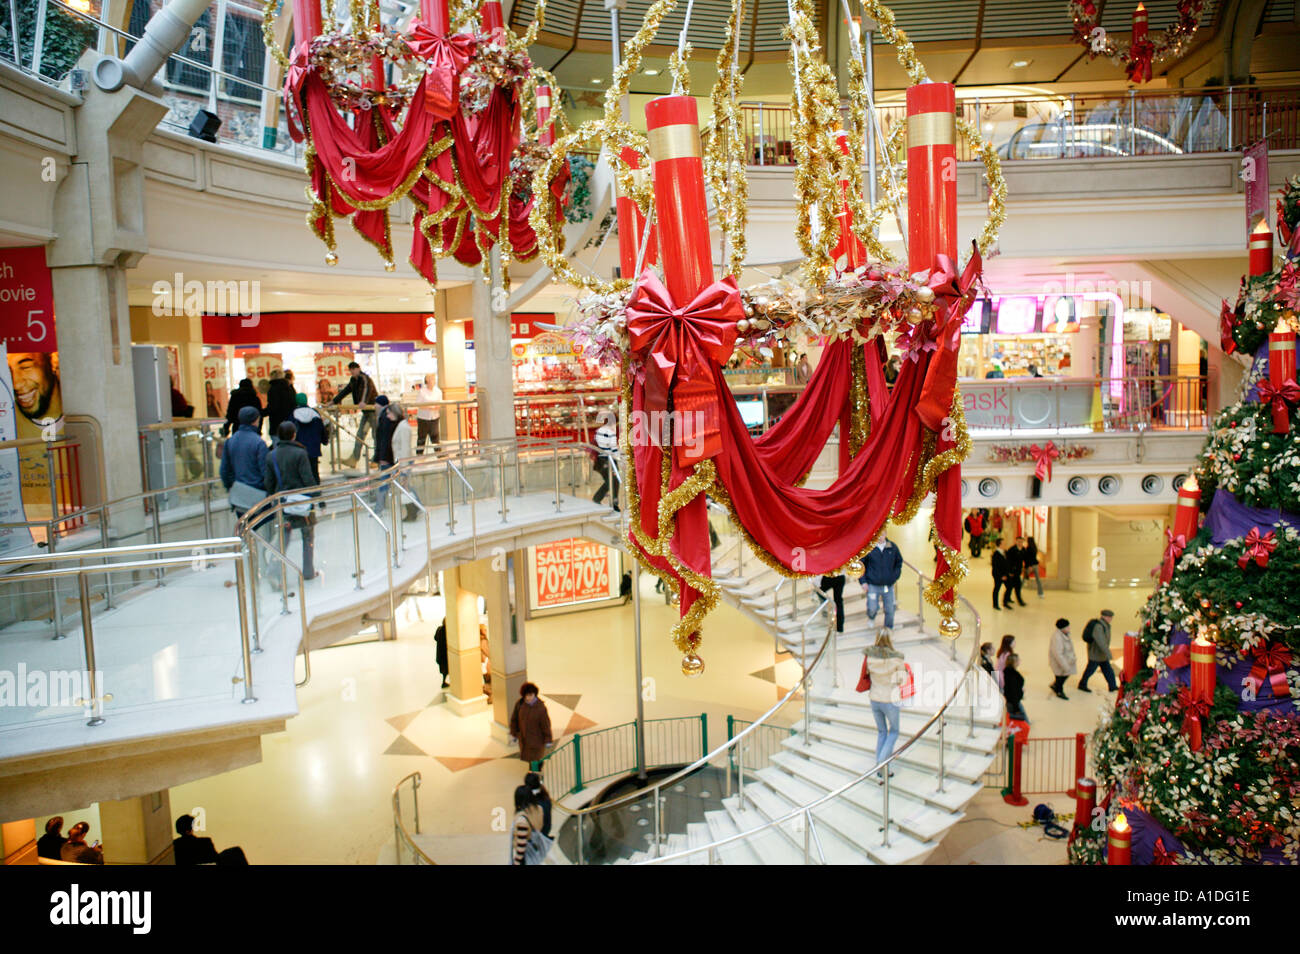 Christmas decorations shopping mall uk stock photo for Retail christmas decorations ideas